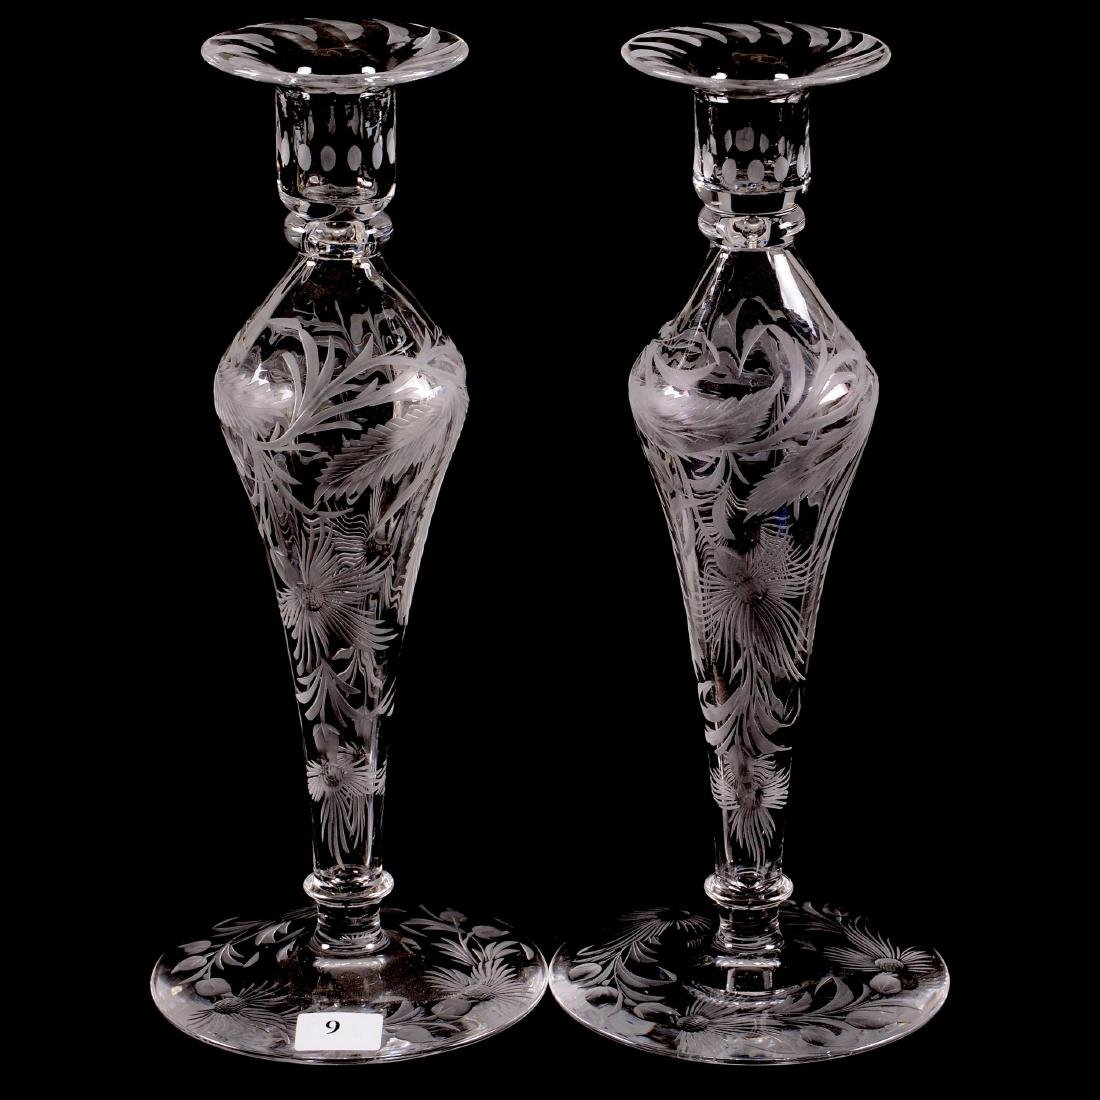 Pair ABCG Candlestick Holders - Signed Libby Pattern #0